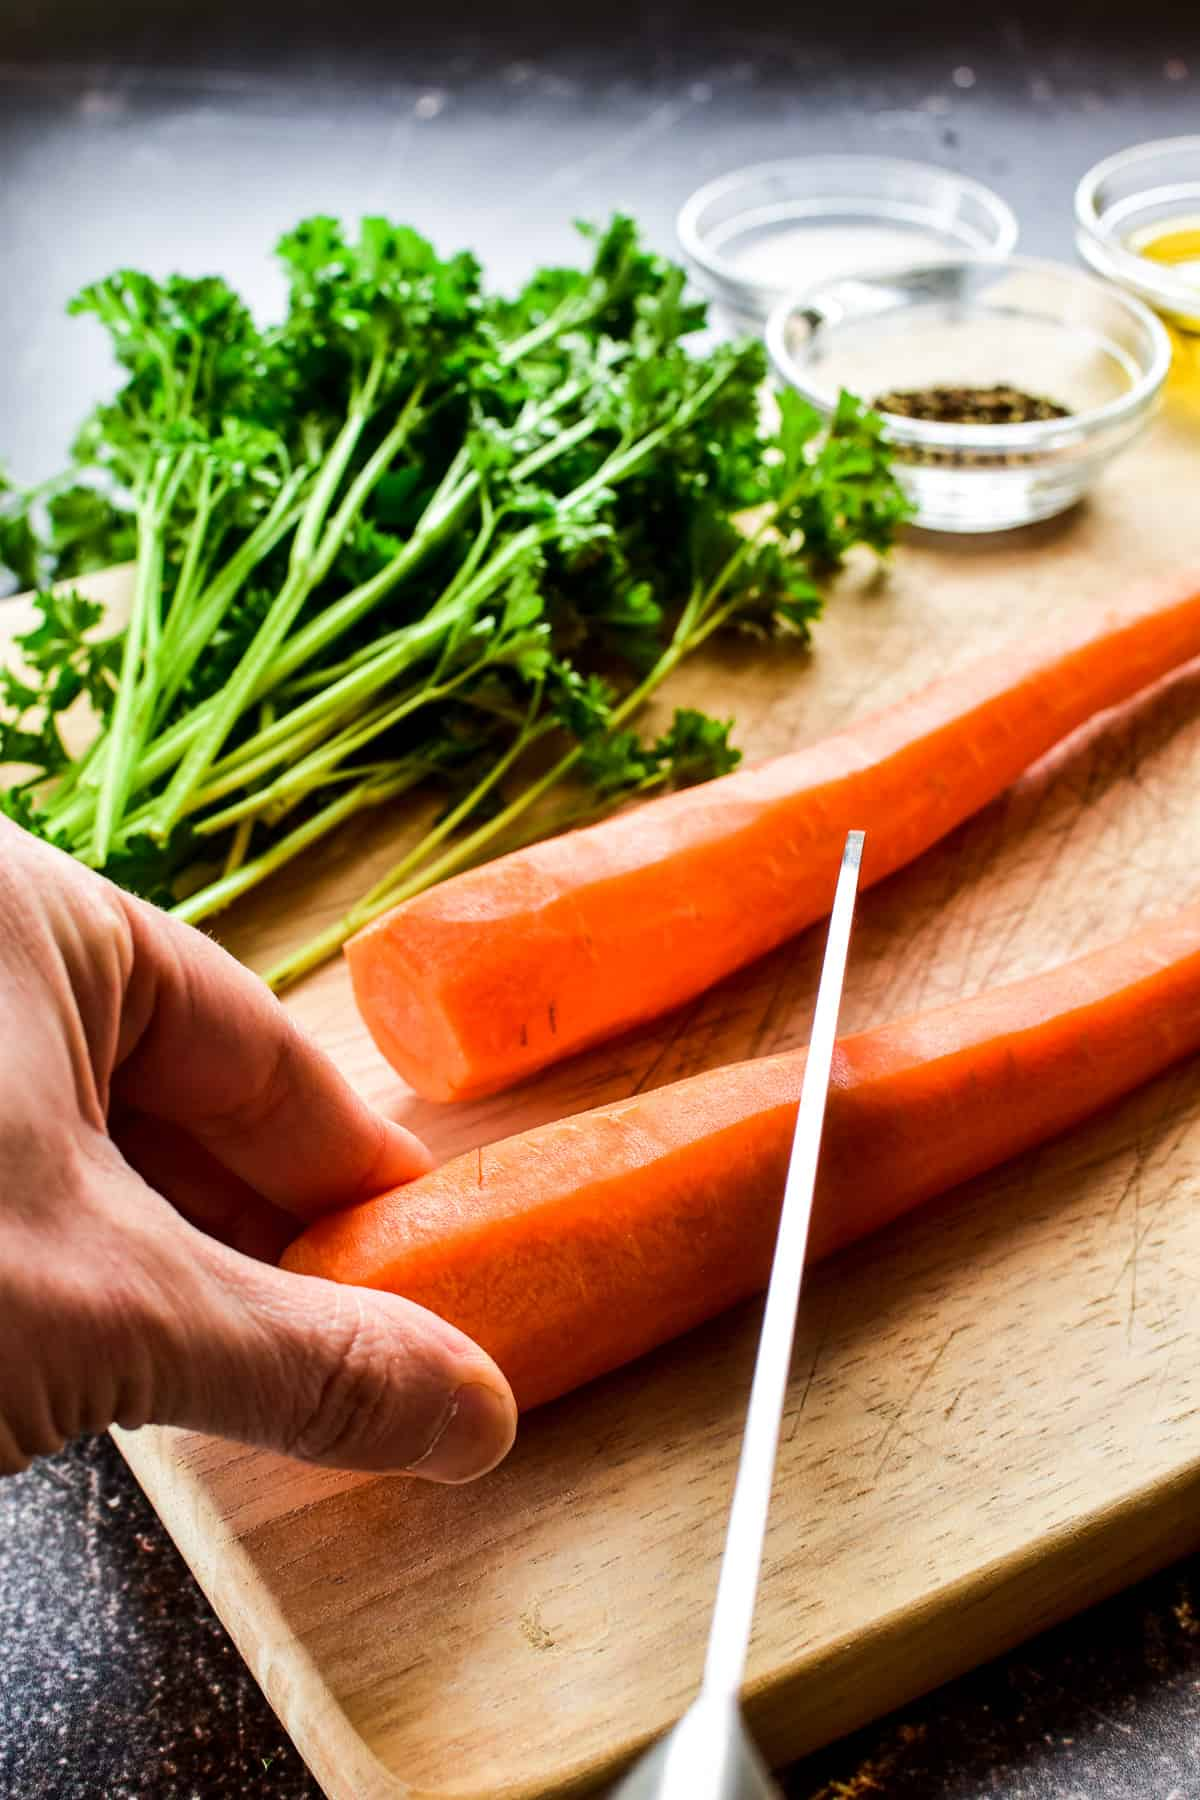 How to cut carrots for Roasted Carrots recipe